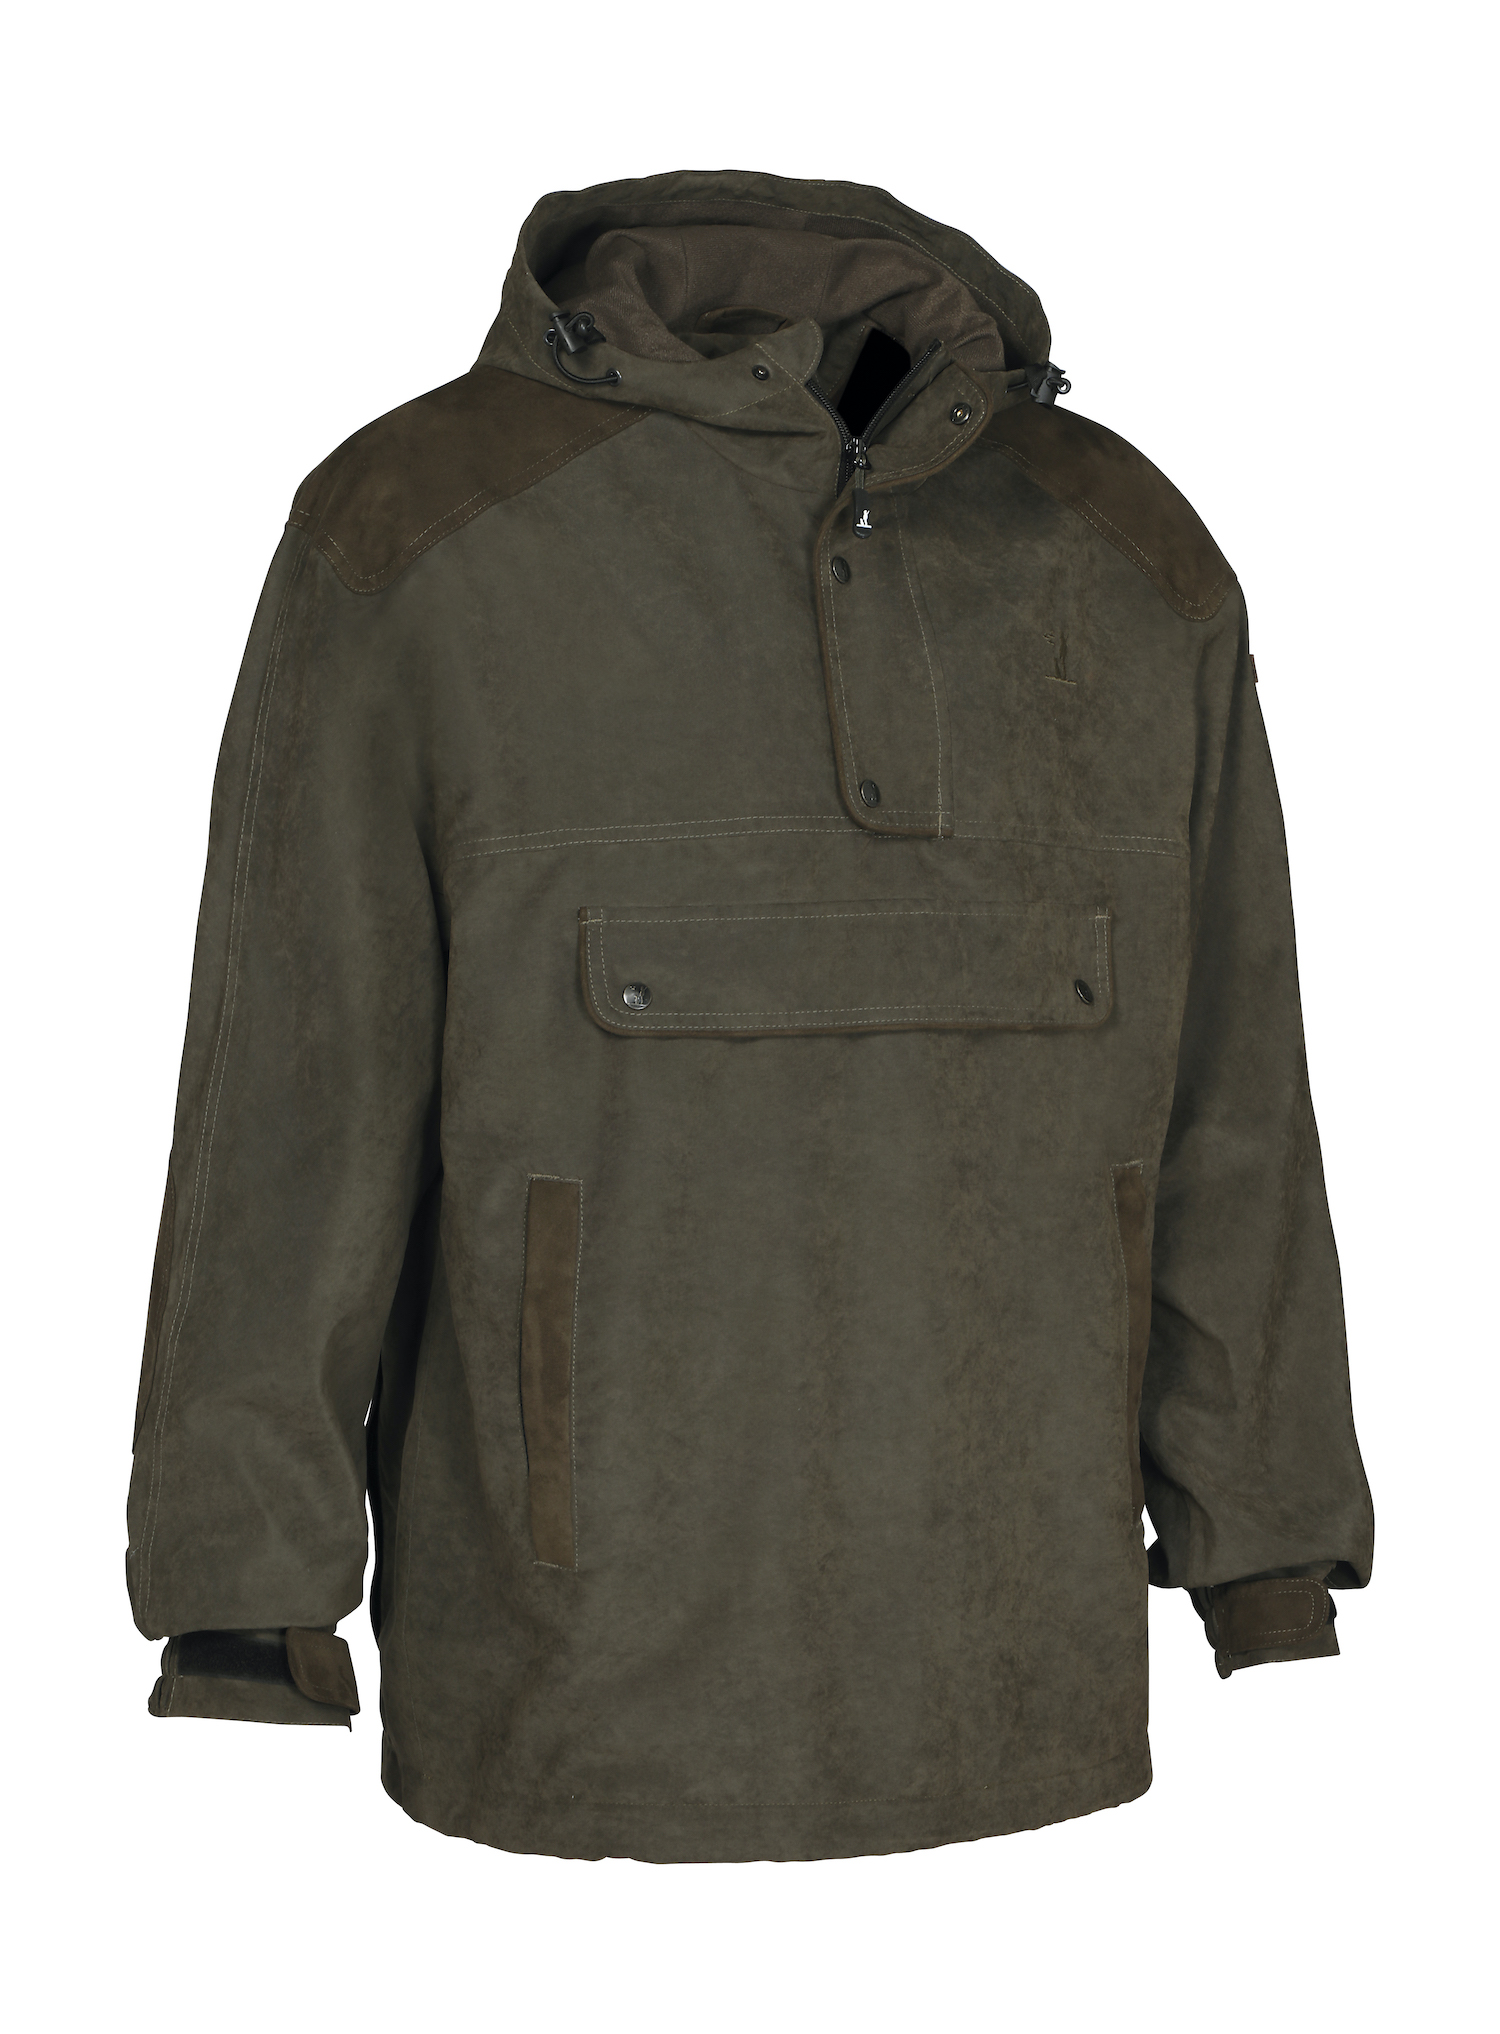 Percussion Highland Pea Smock - - Shooting and Outdoor Clothing